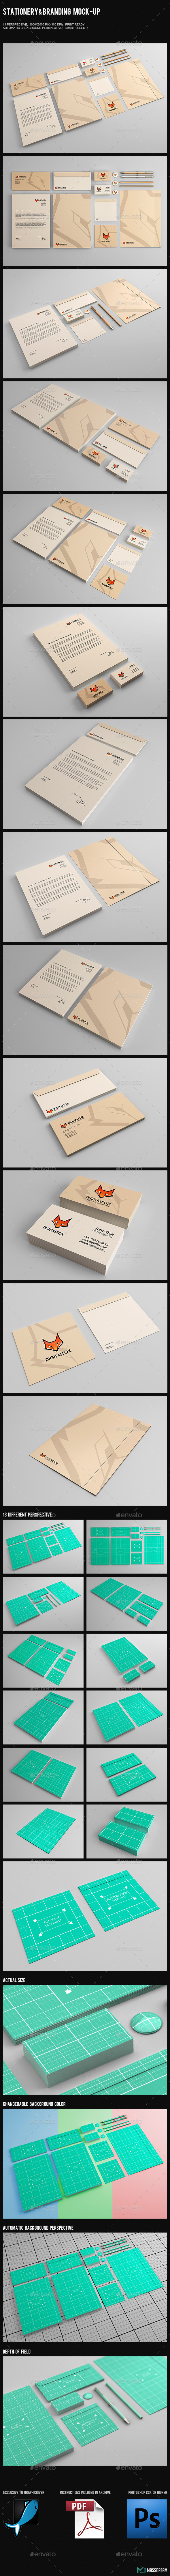 GraphicRiver Stationery & Branding Mock-Up 9186667